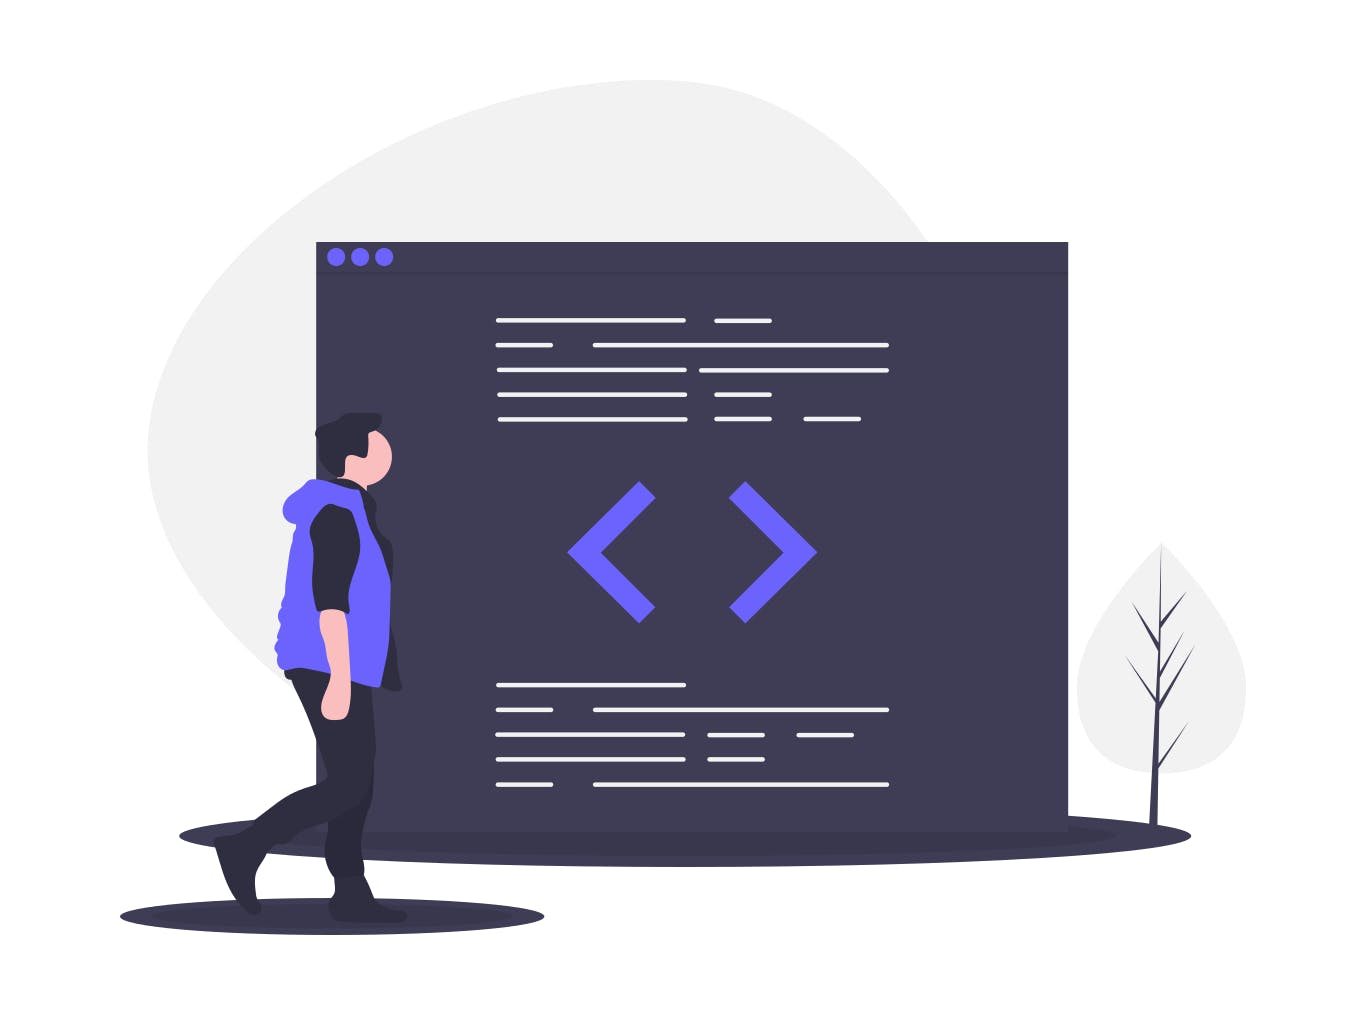 undraw_code_review_l1q9.png